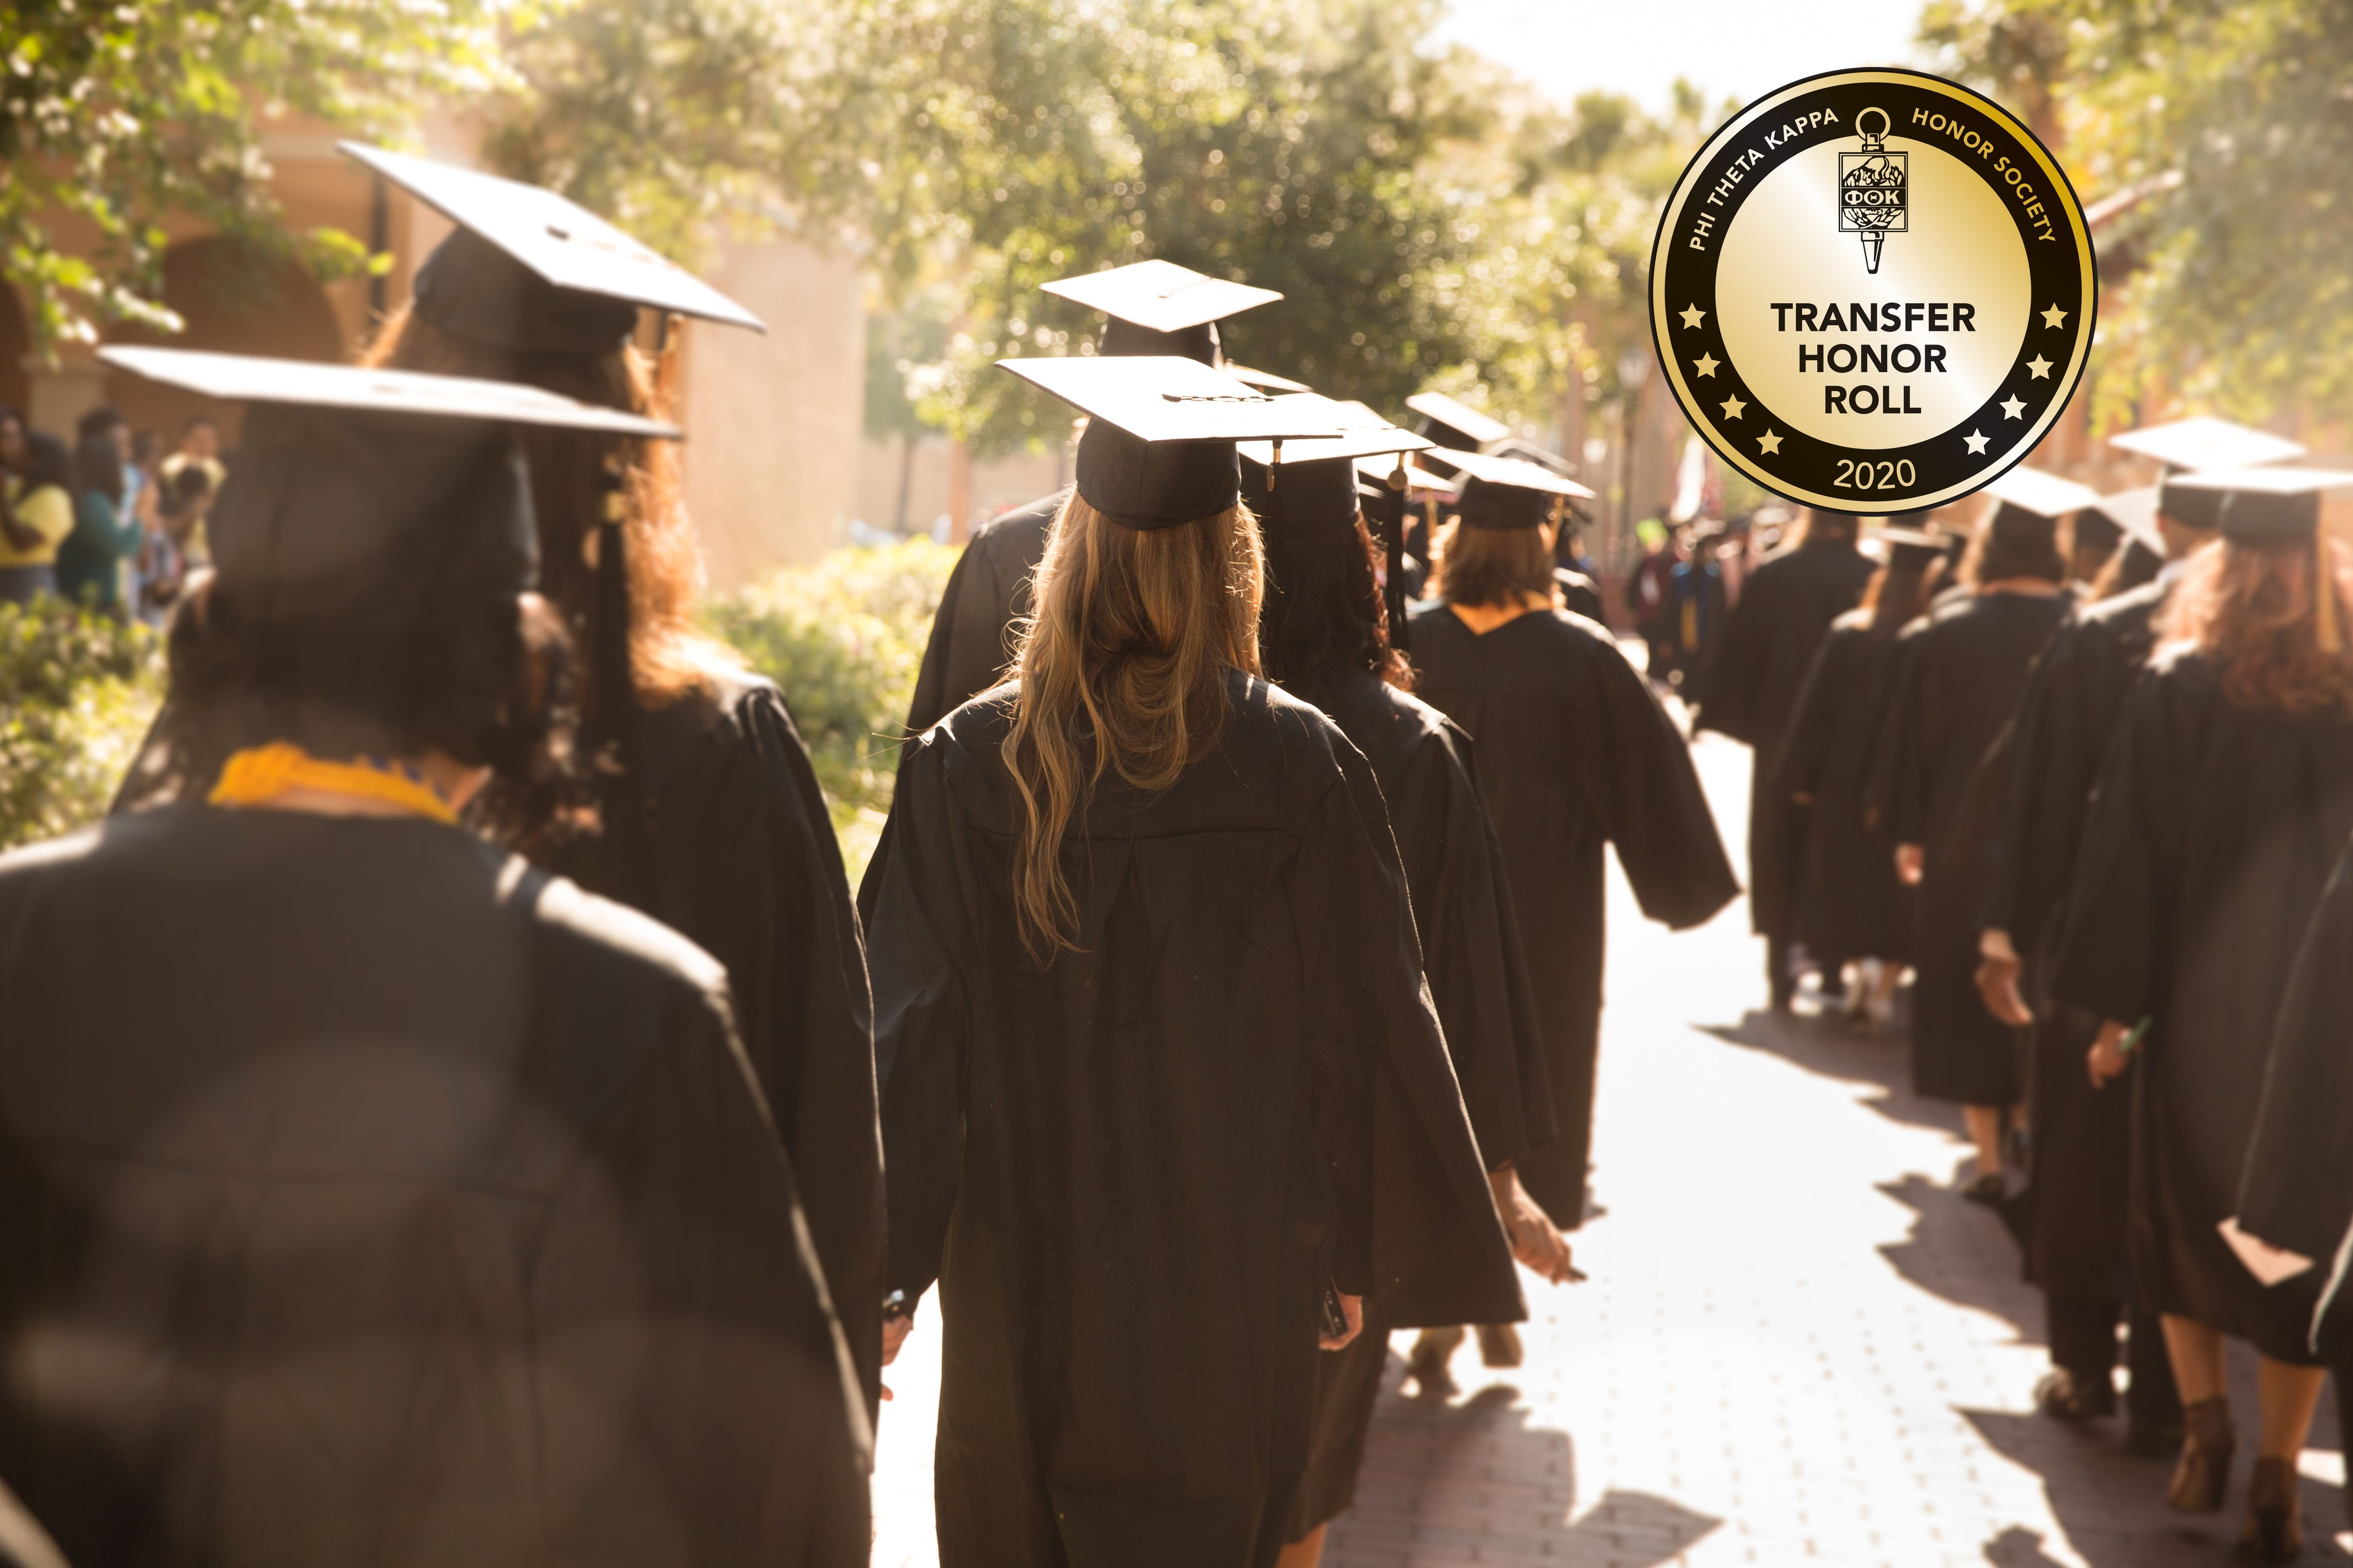 Students in gaps and gowns walk to commencement at Rollins College, one of the best colleges for transfer students.